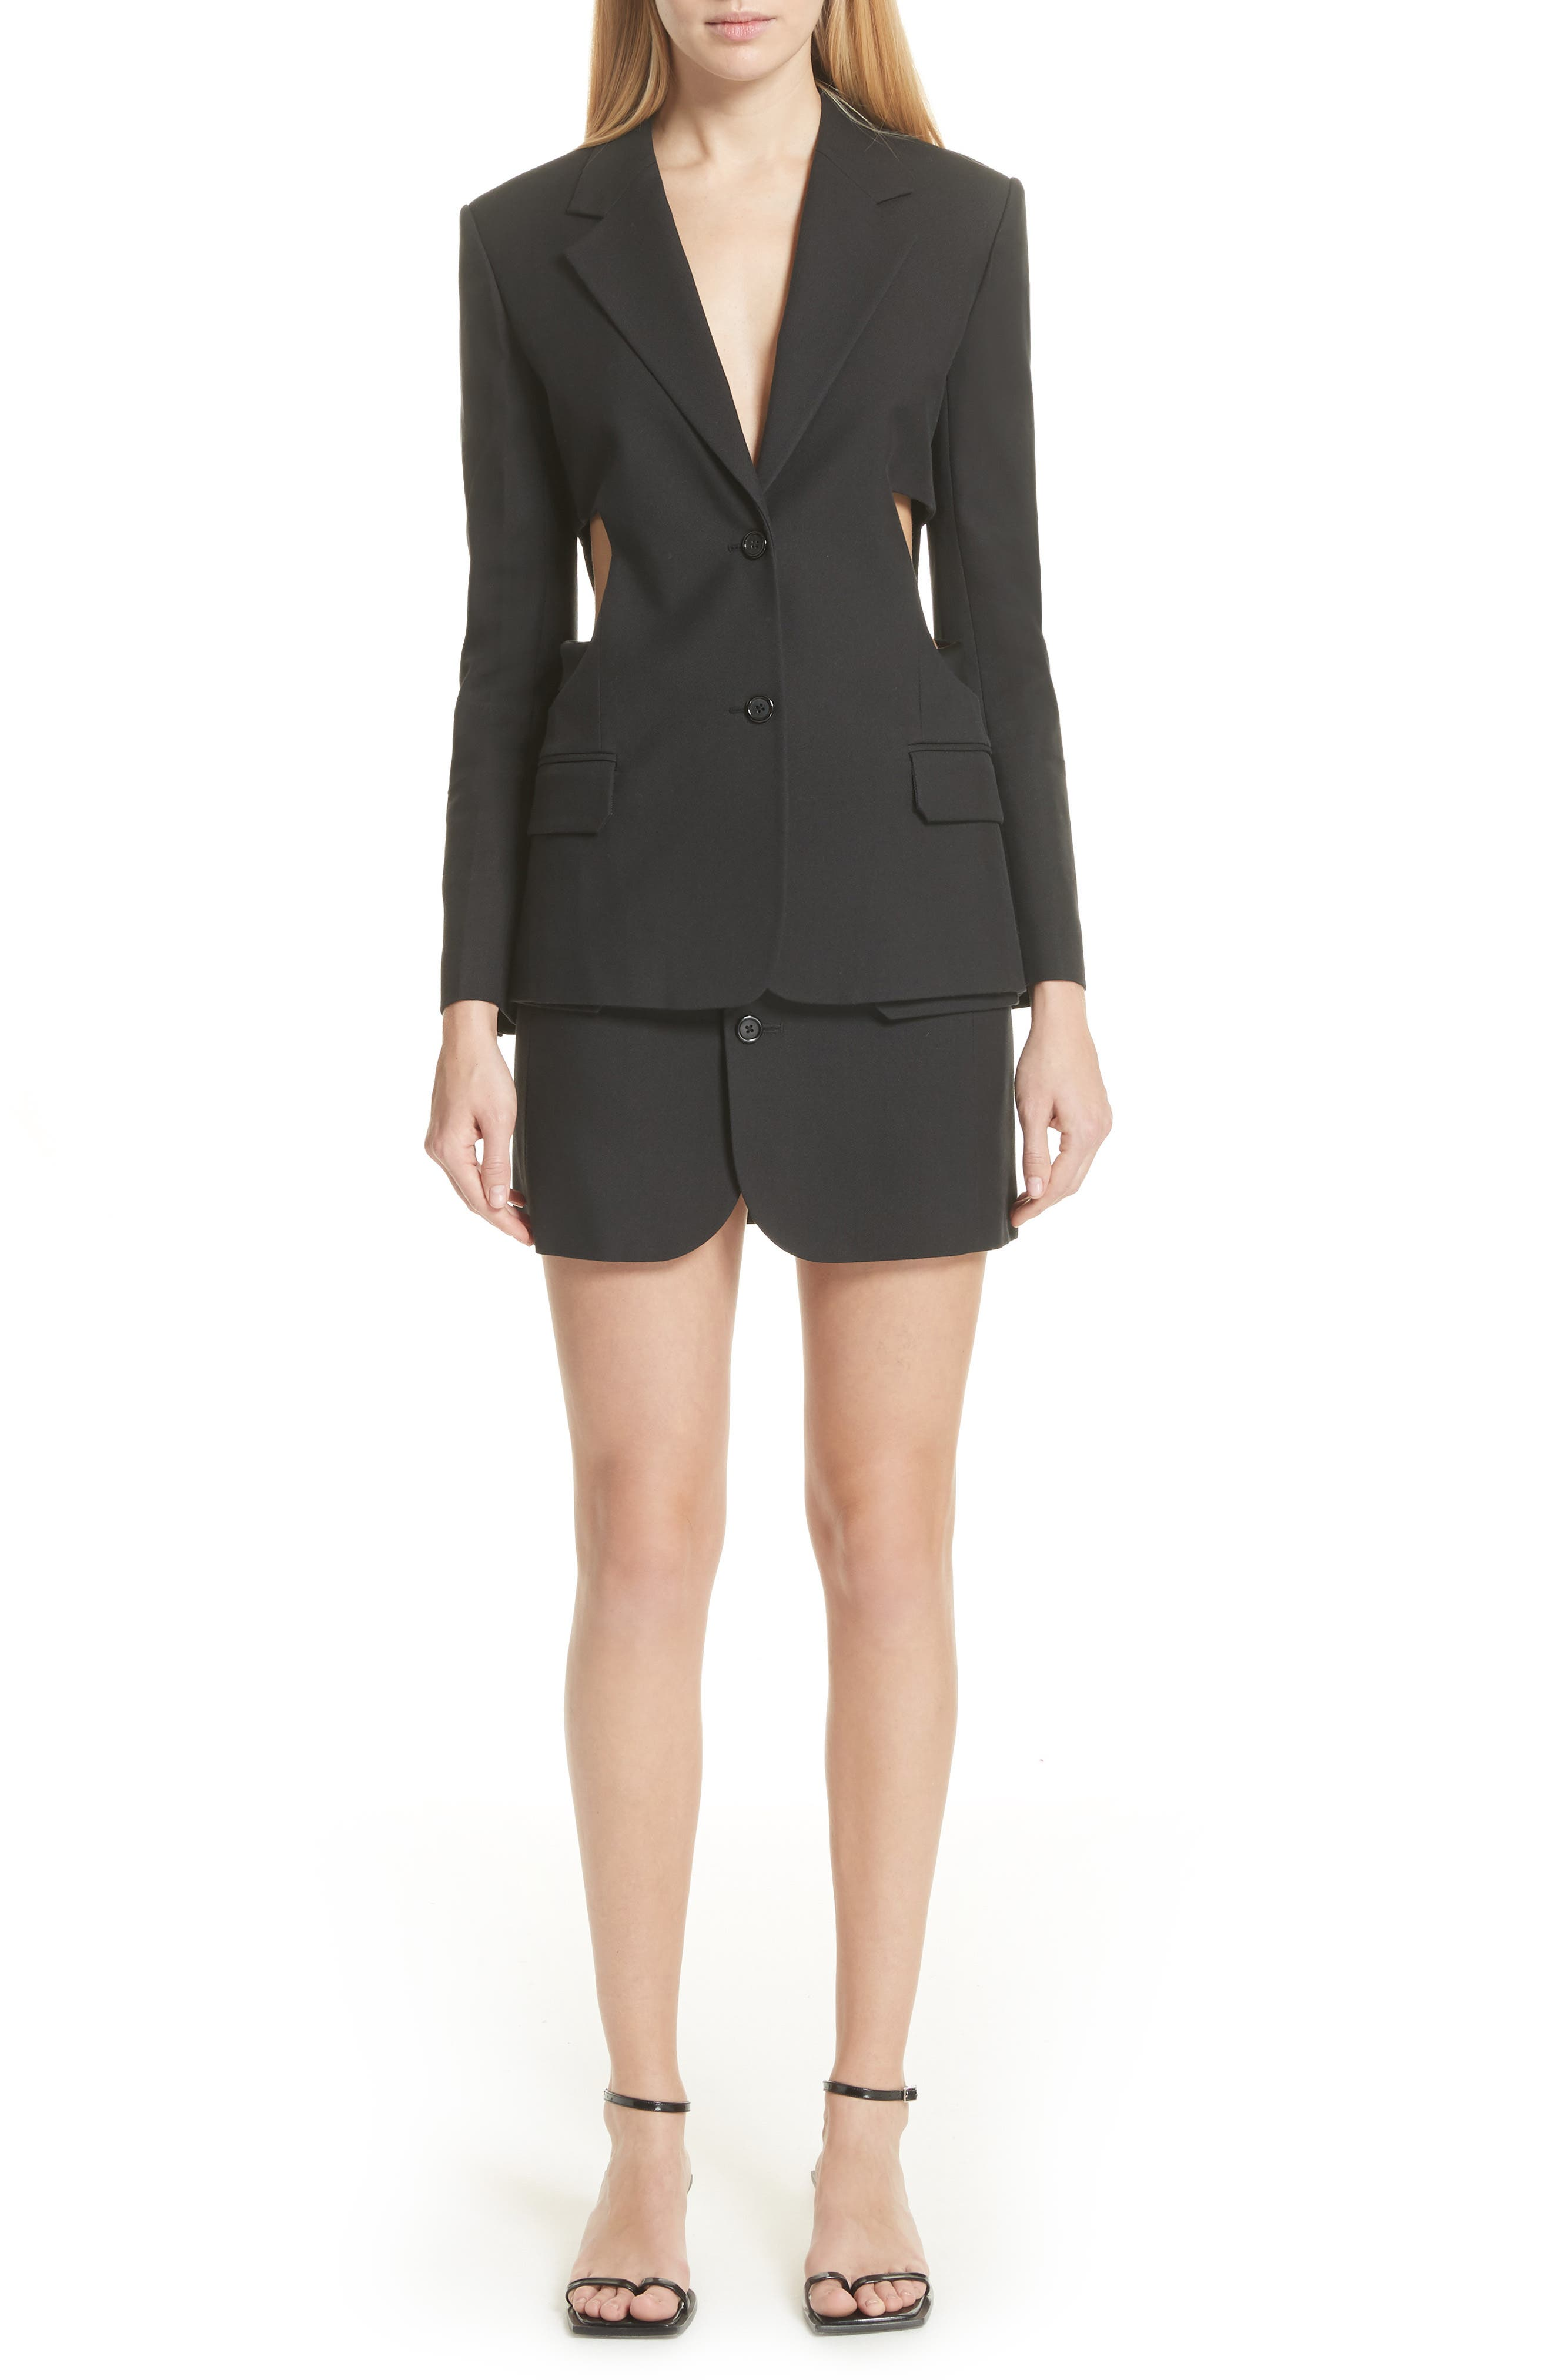 HELMUT LANG,                             Cutout Waist Blazer,                             Alternate thumbnail 7, color,                             001